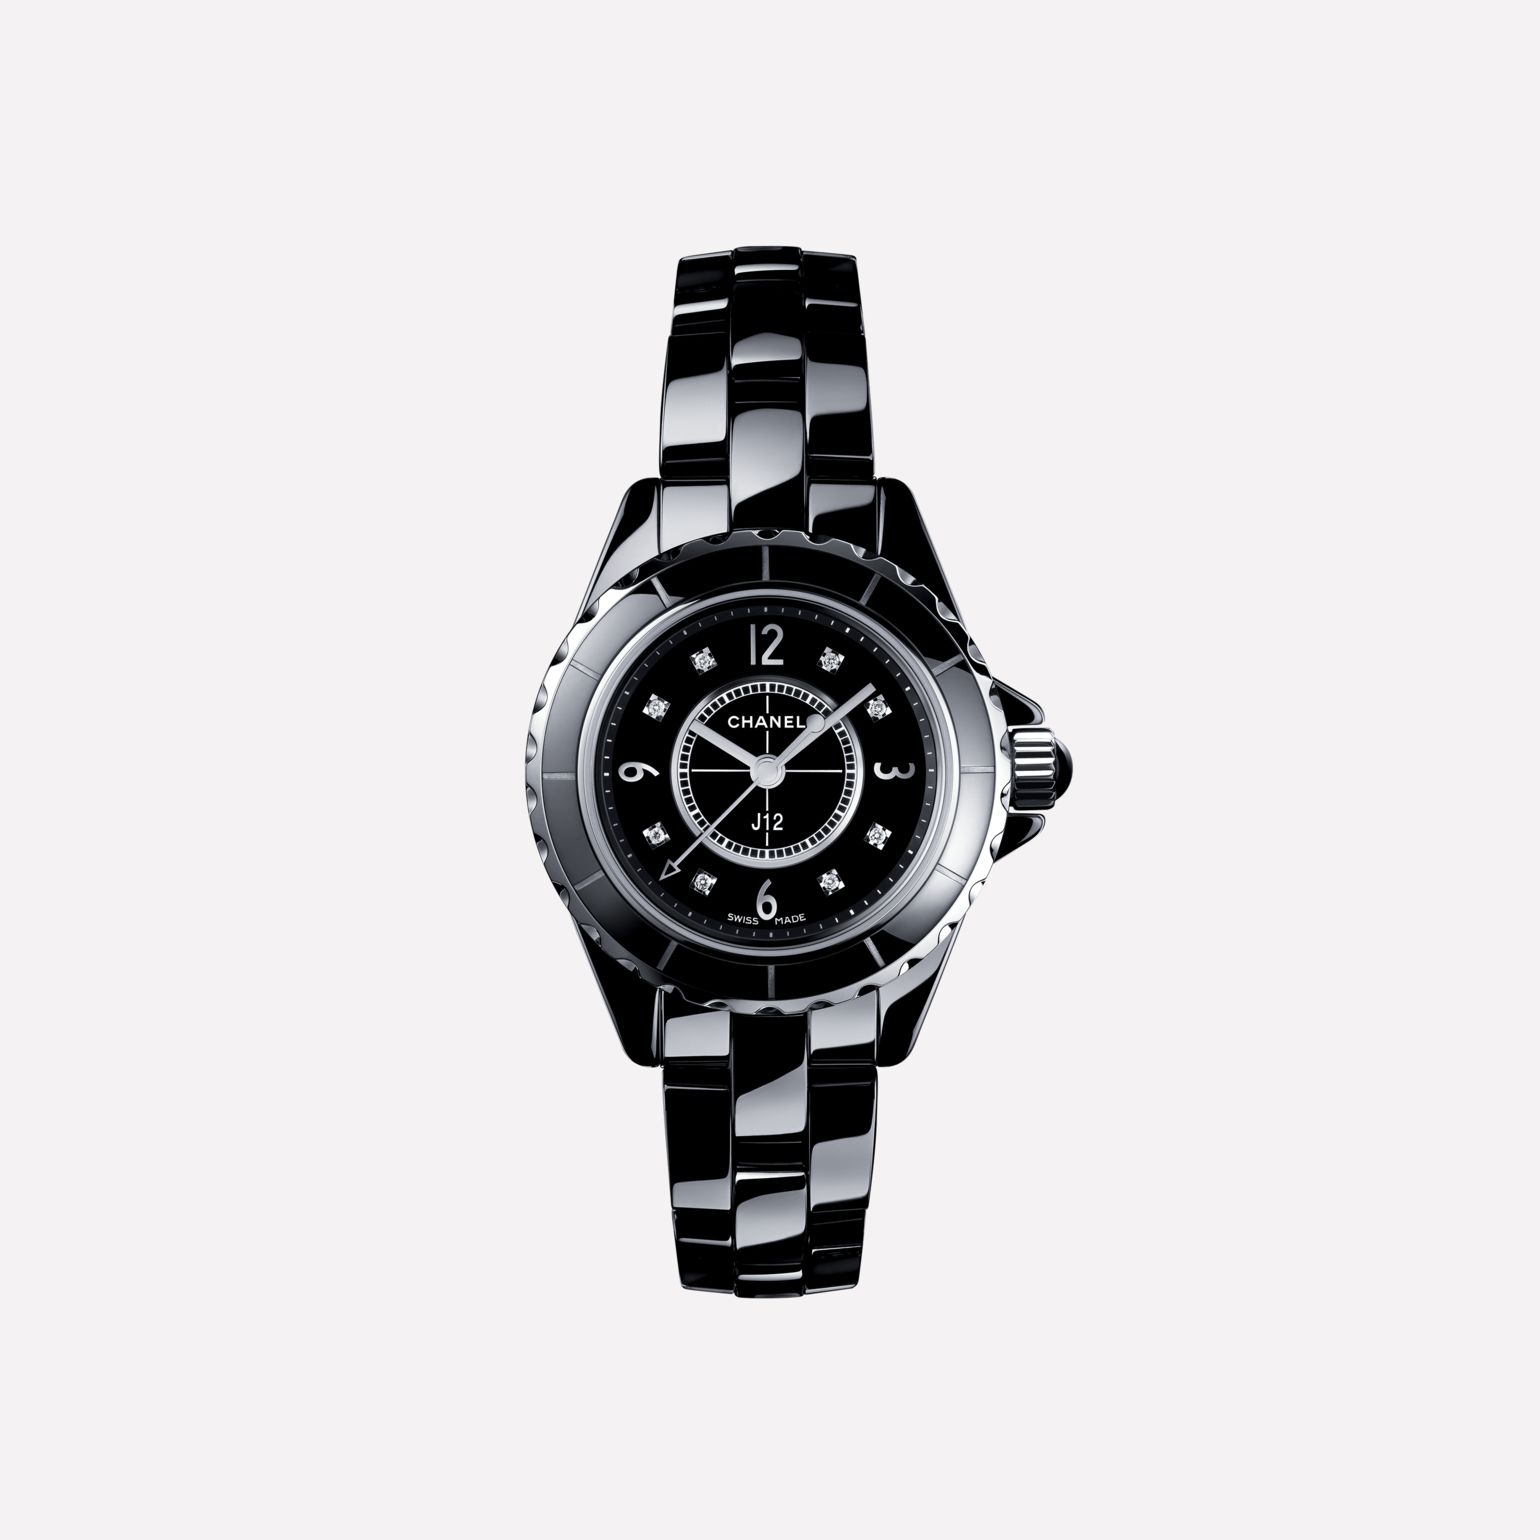 J12 Watch Black highly-resistant ceramic and steel, diamond indicators